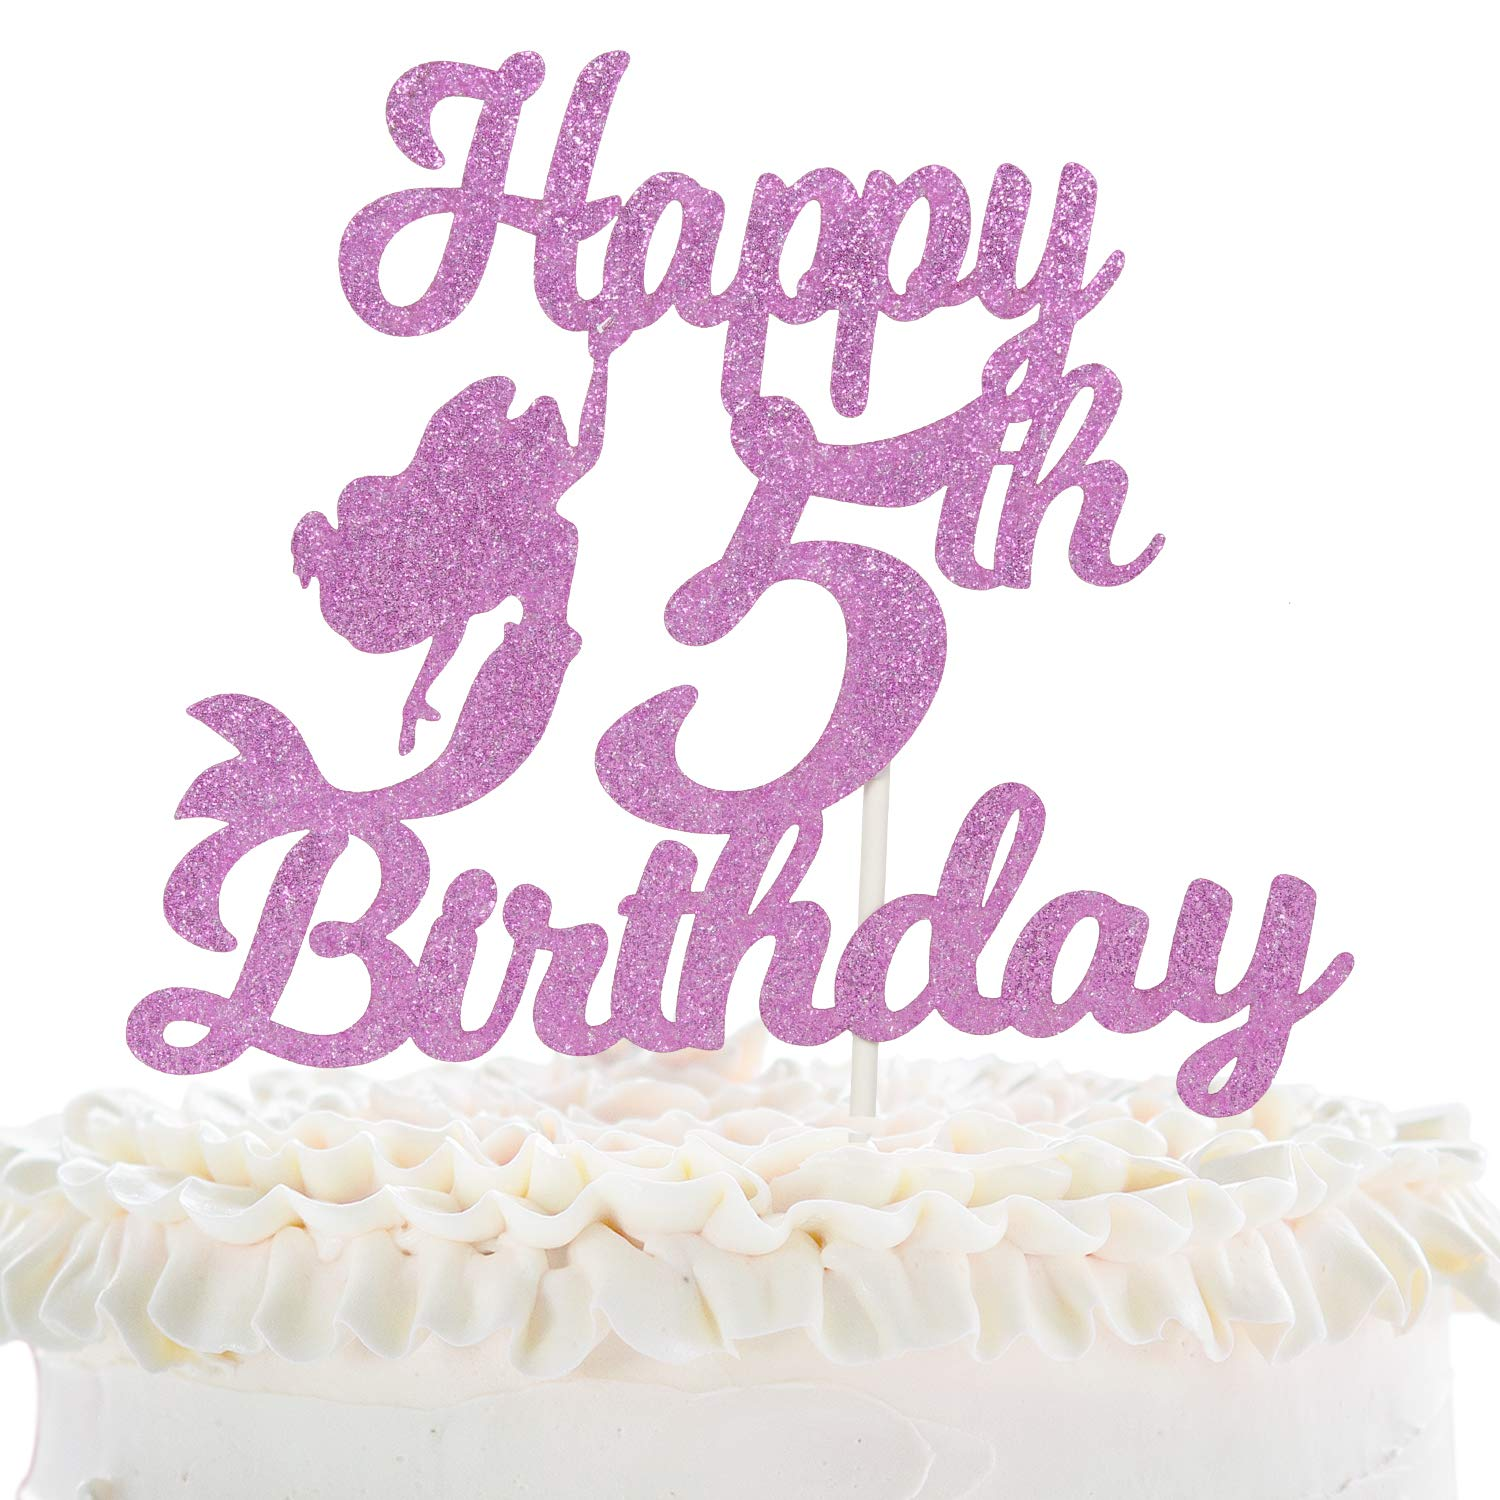 Awe Inspiring Birthday Cake Candle Five Candle Number 5 Iridescent Glitter Funny Birthday Cards Online Bapapcheapnameinfo